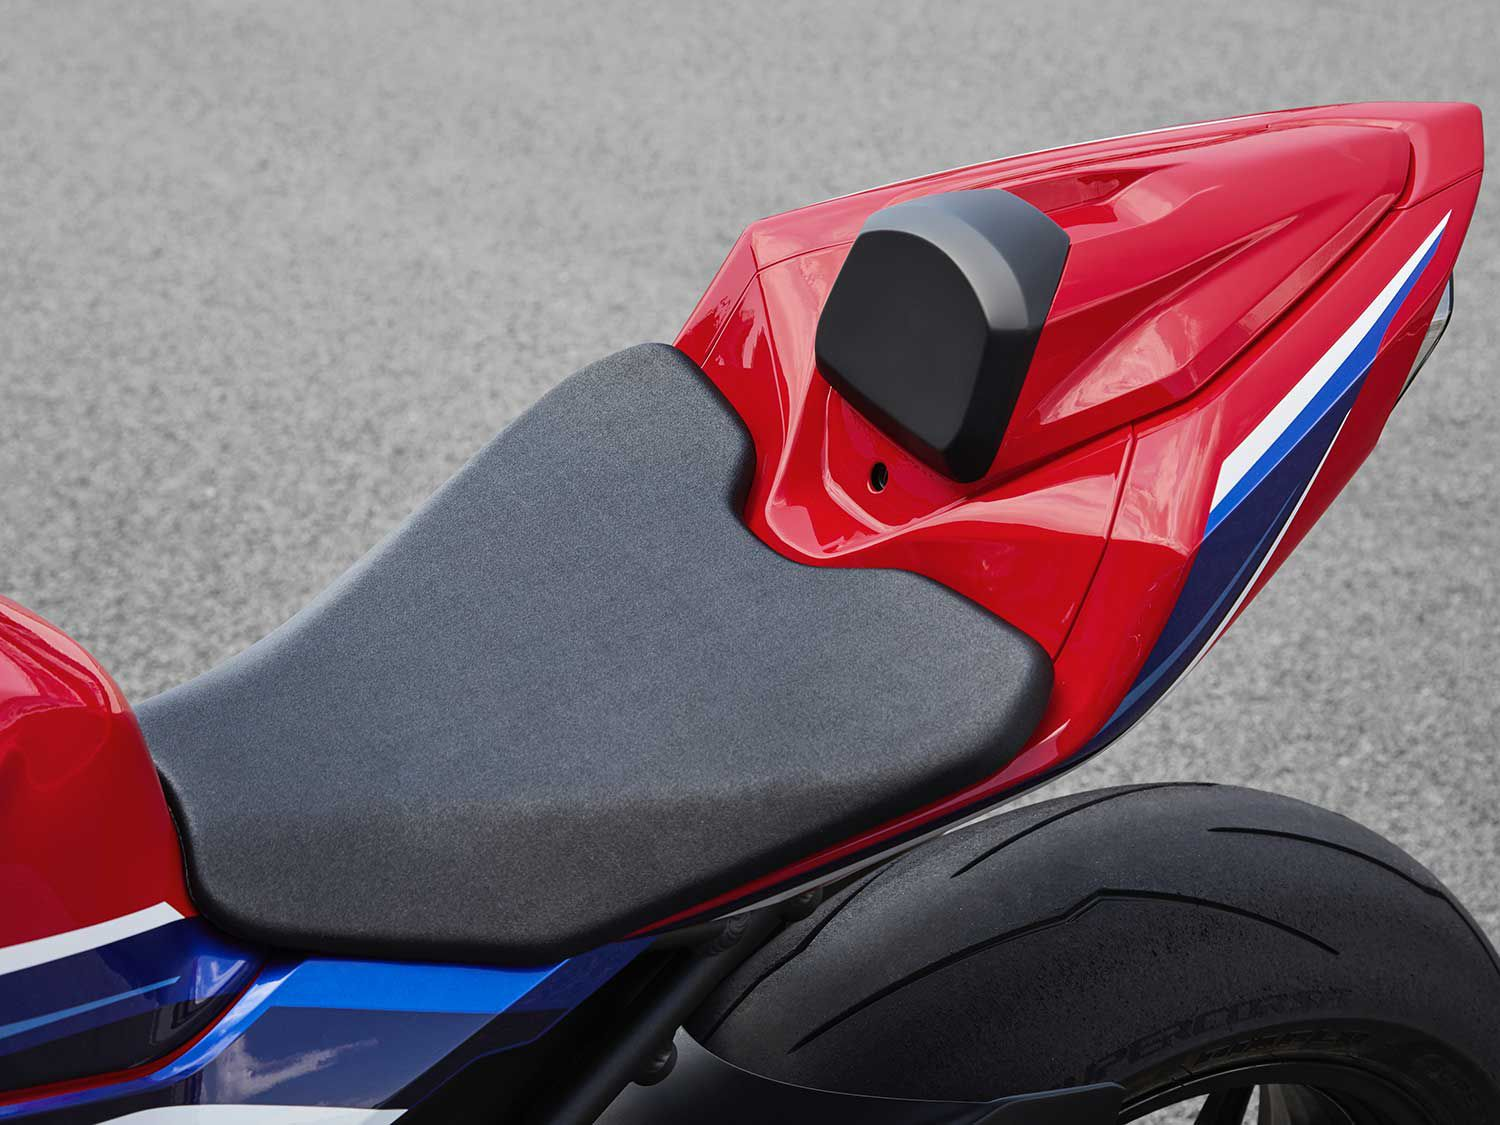 The rider seat is 0.3 inch higher than before. It also appears longer with ample room for taller riders.